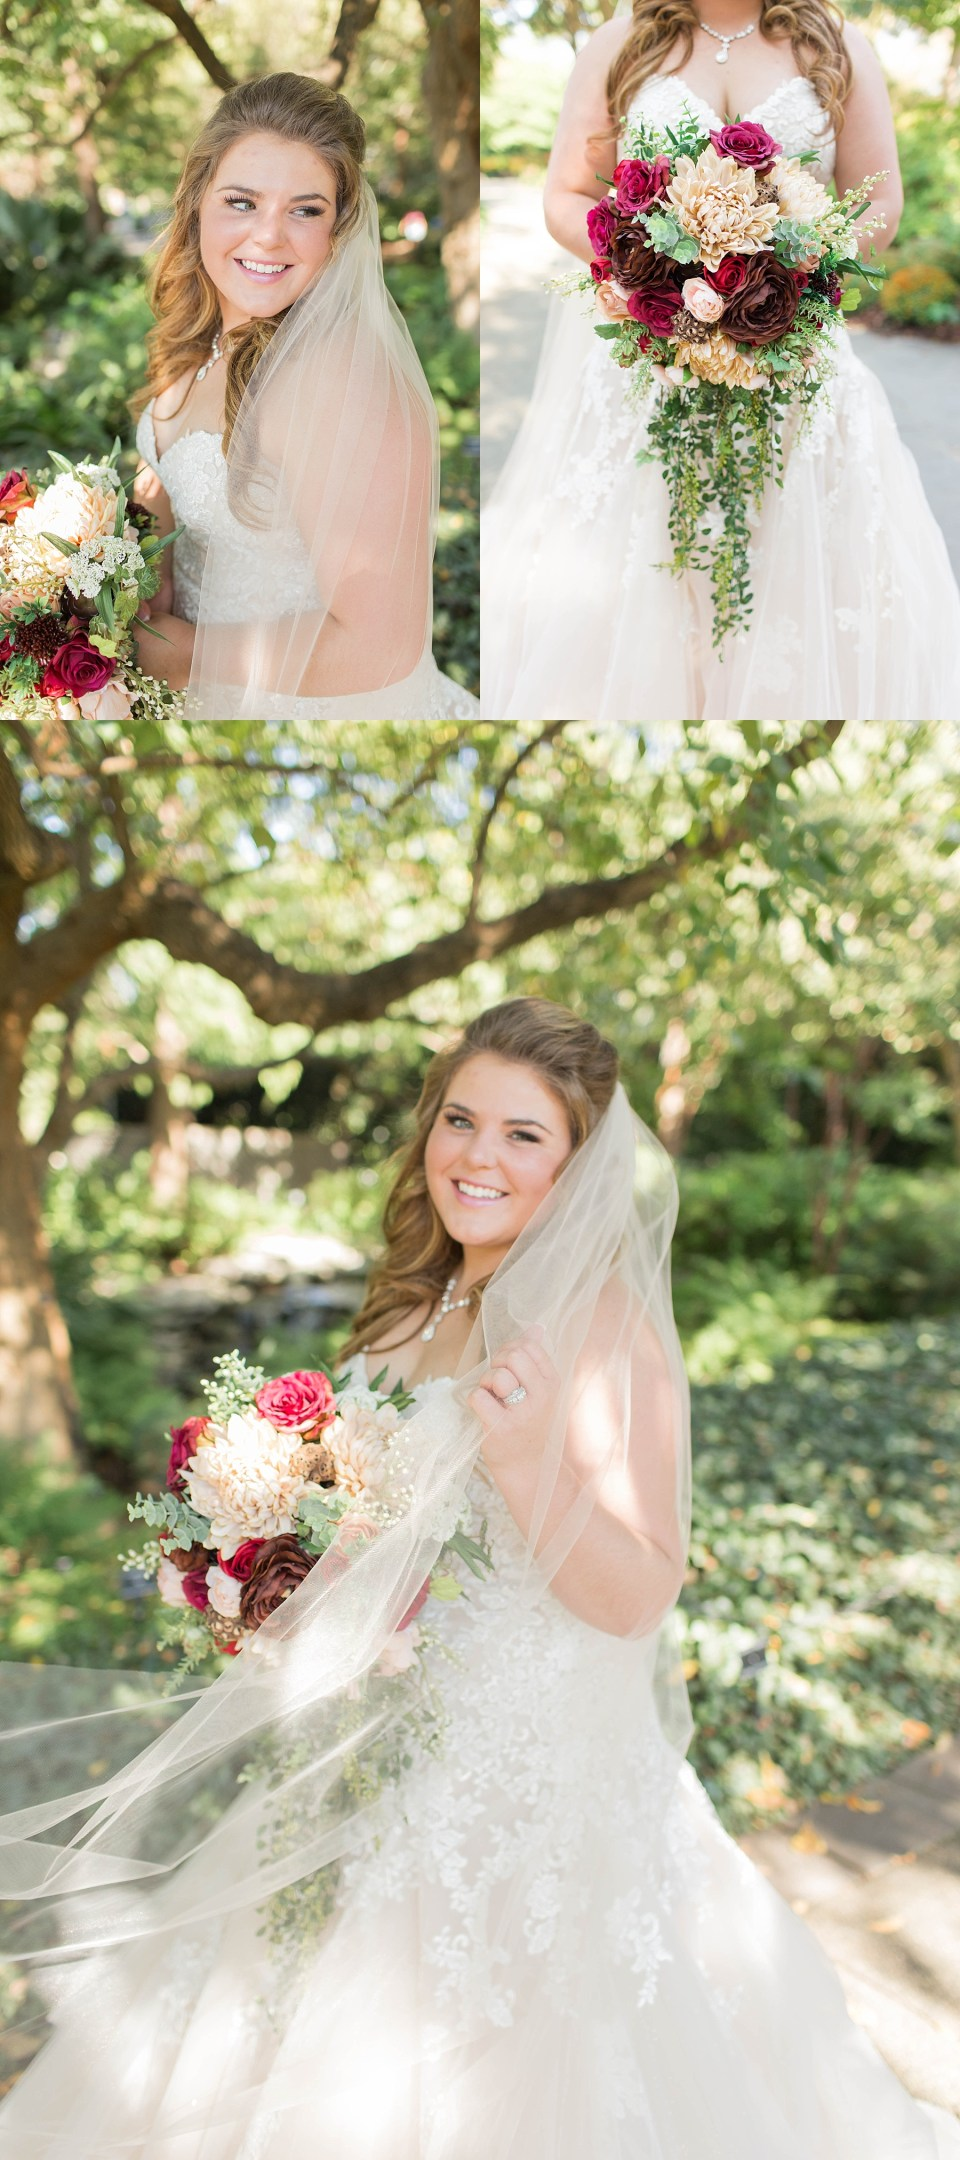 Bridals | Becca Sue Photography - beccasuephotography.com